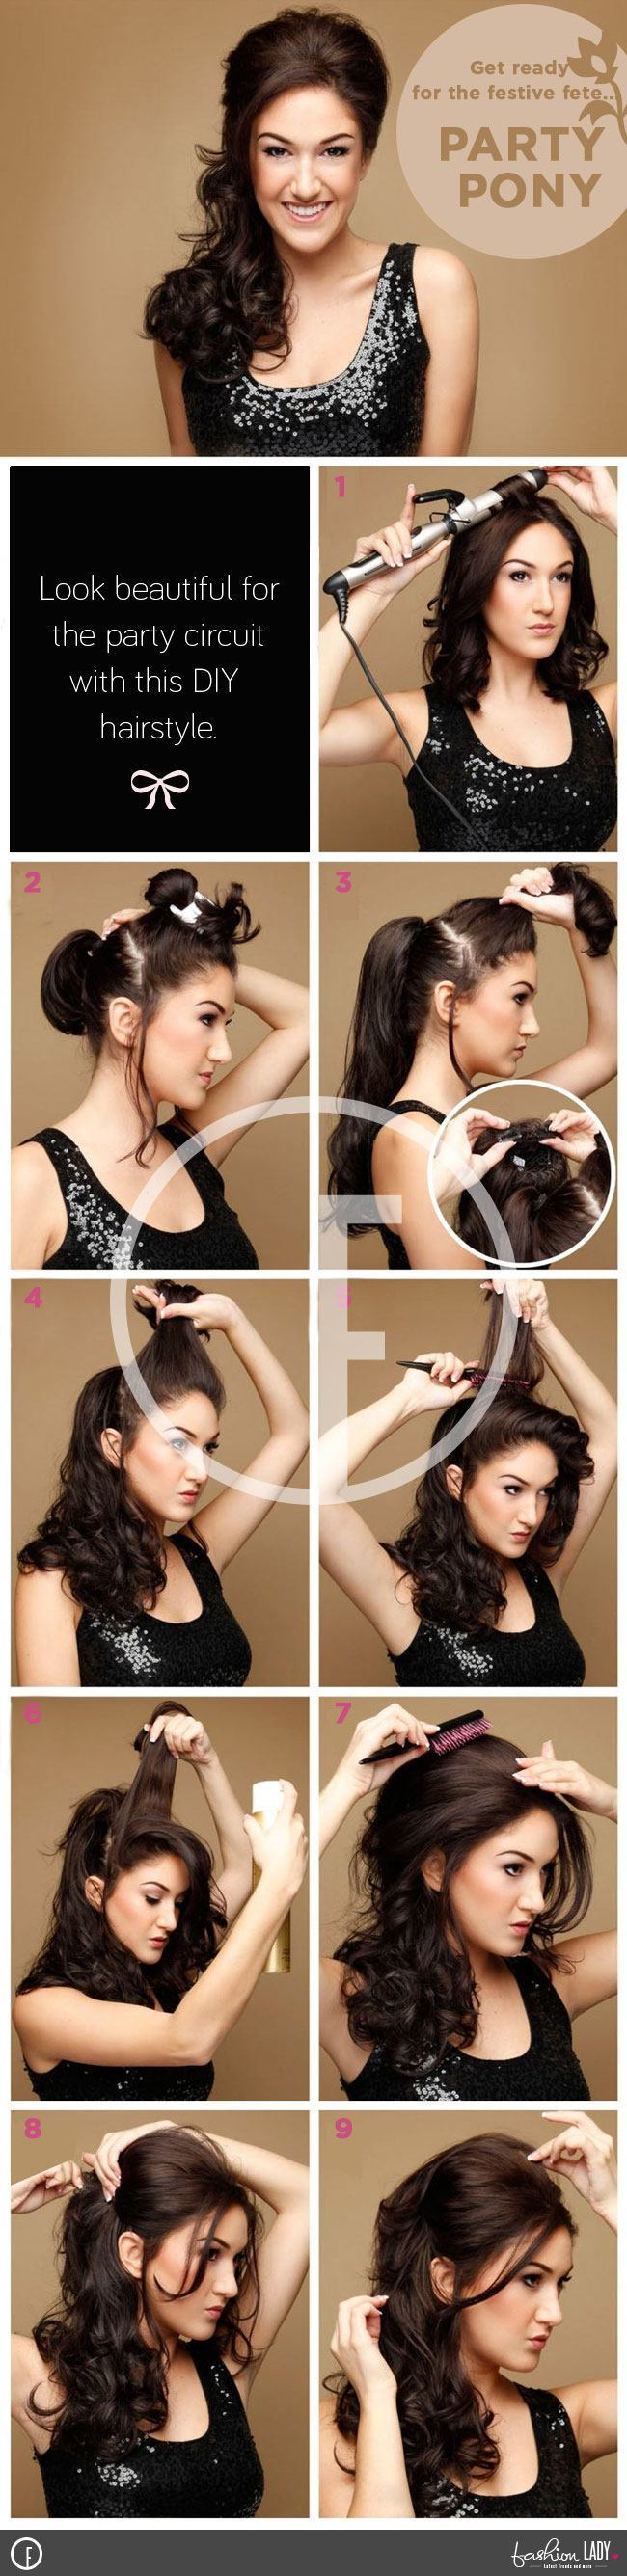 Party Pony - A new Stylish Ponytail Hairstyle for the Party-full Lady